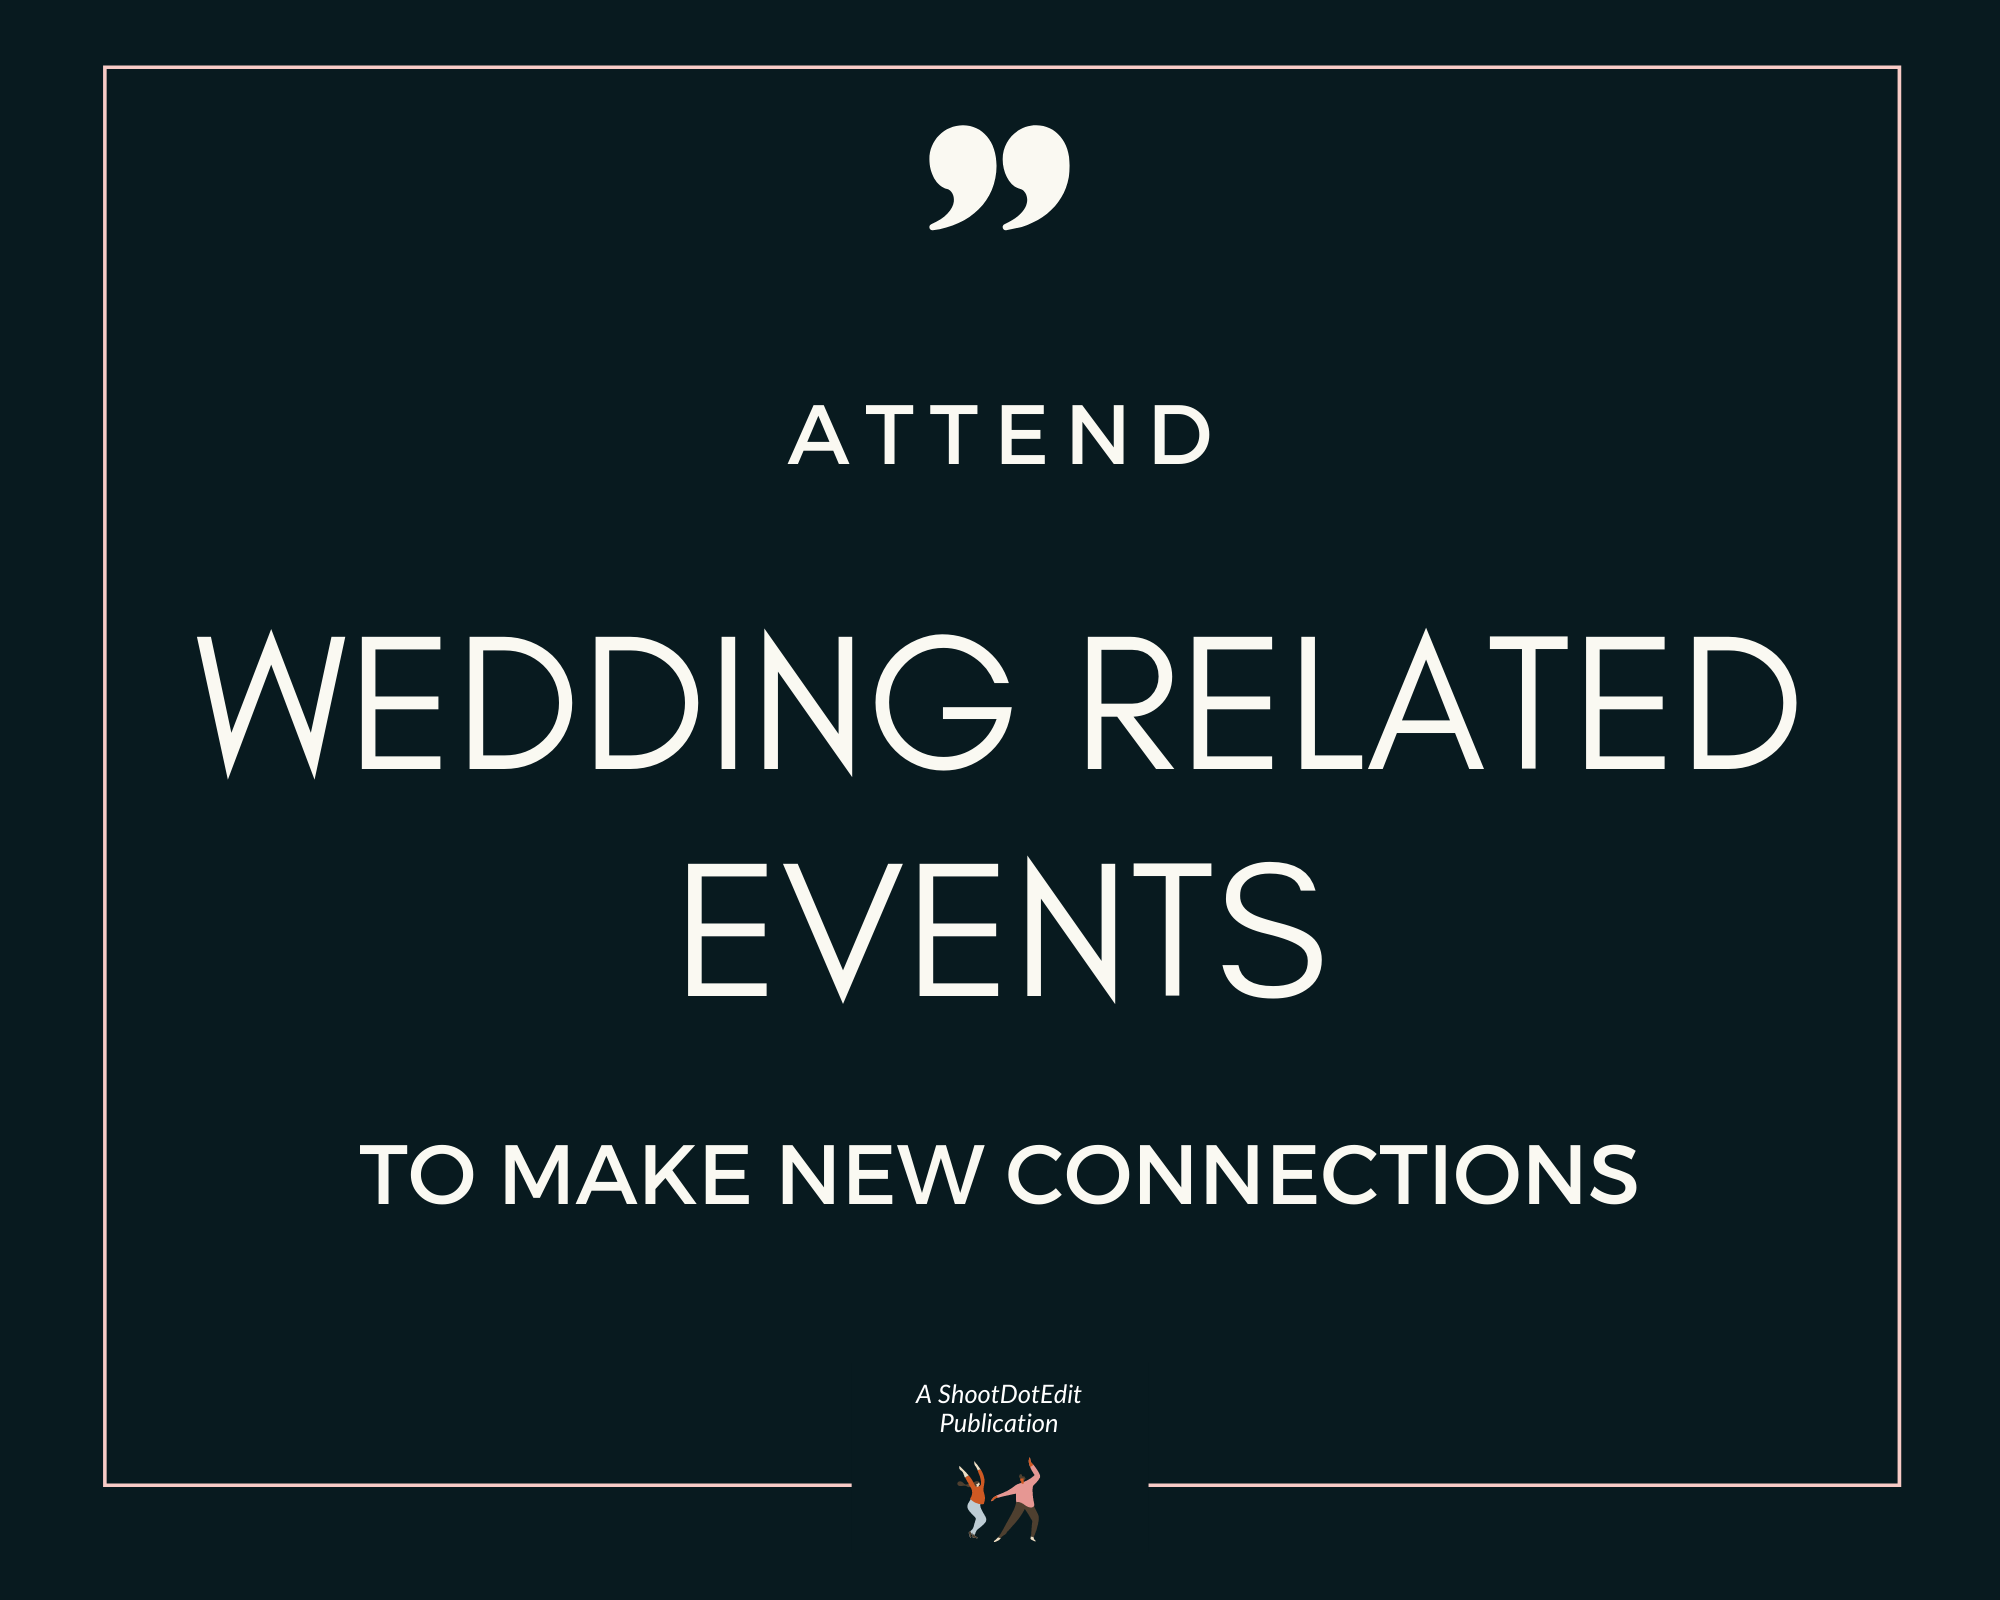 Infographic stating attend wedding related events to make new connections